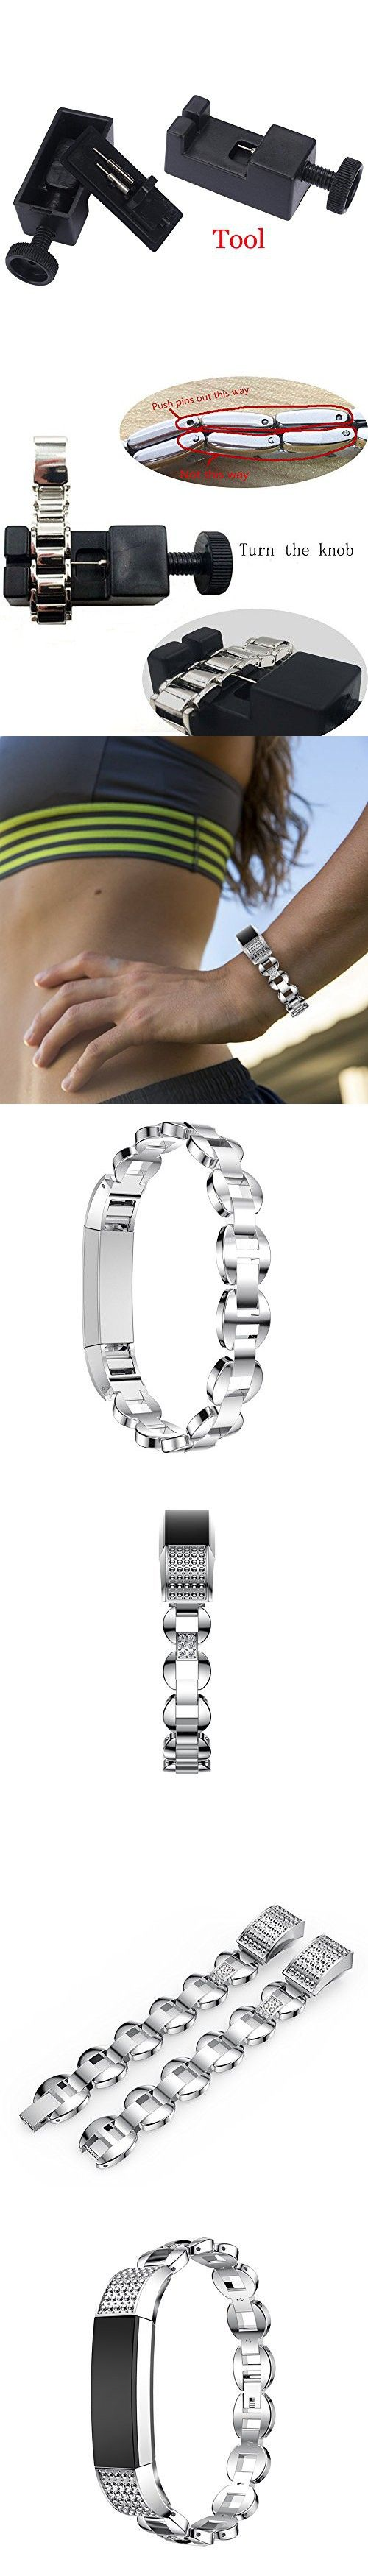 Newest Premium Replacement Accessory Metal Watch Bands Bracelet Strap for Fitbit Alta HR and Alta(No Tracker) (Style E: Silver)